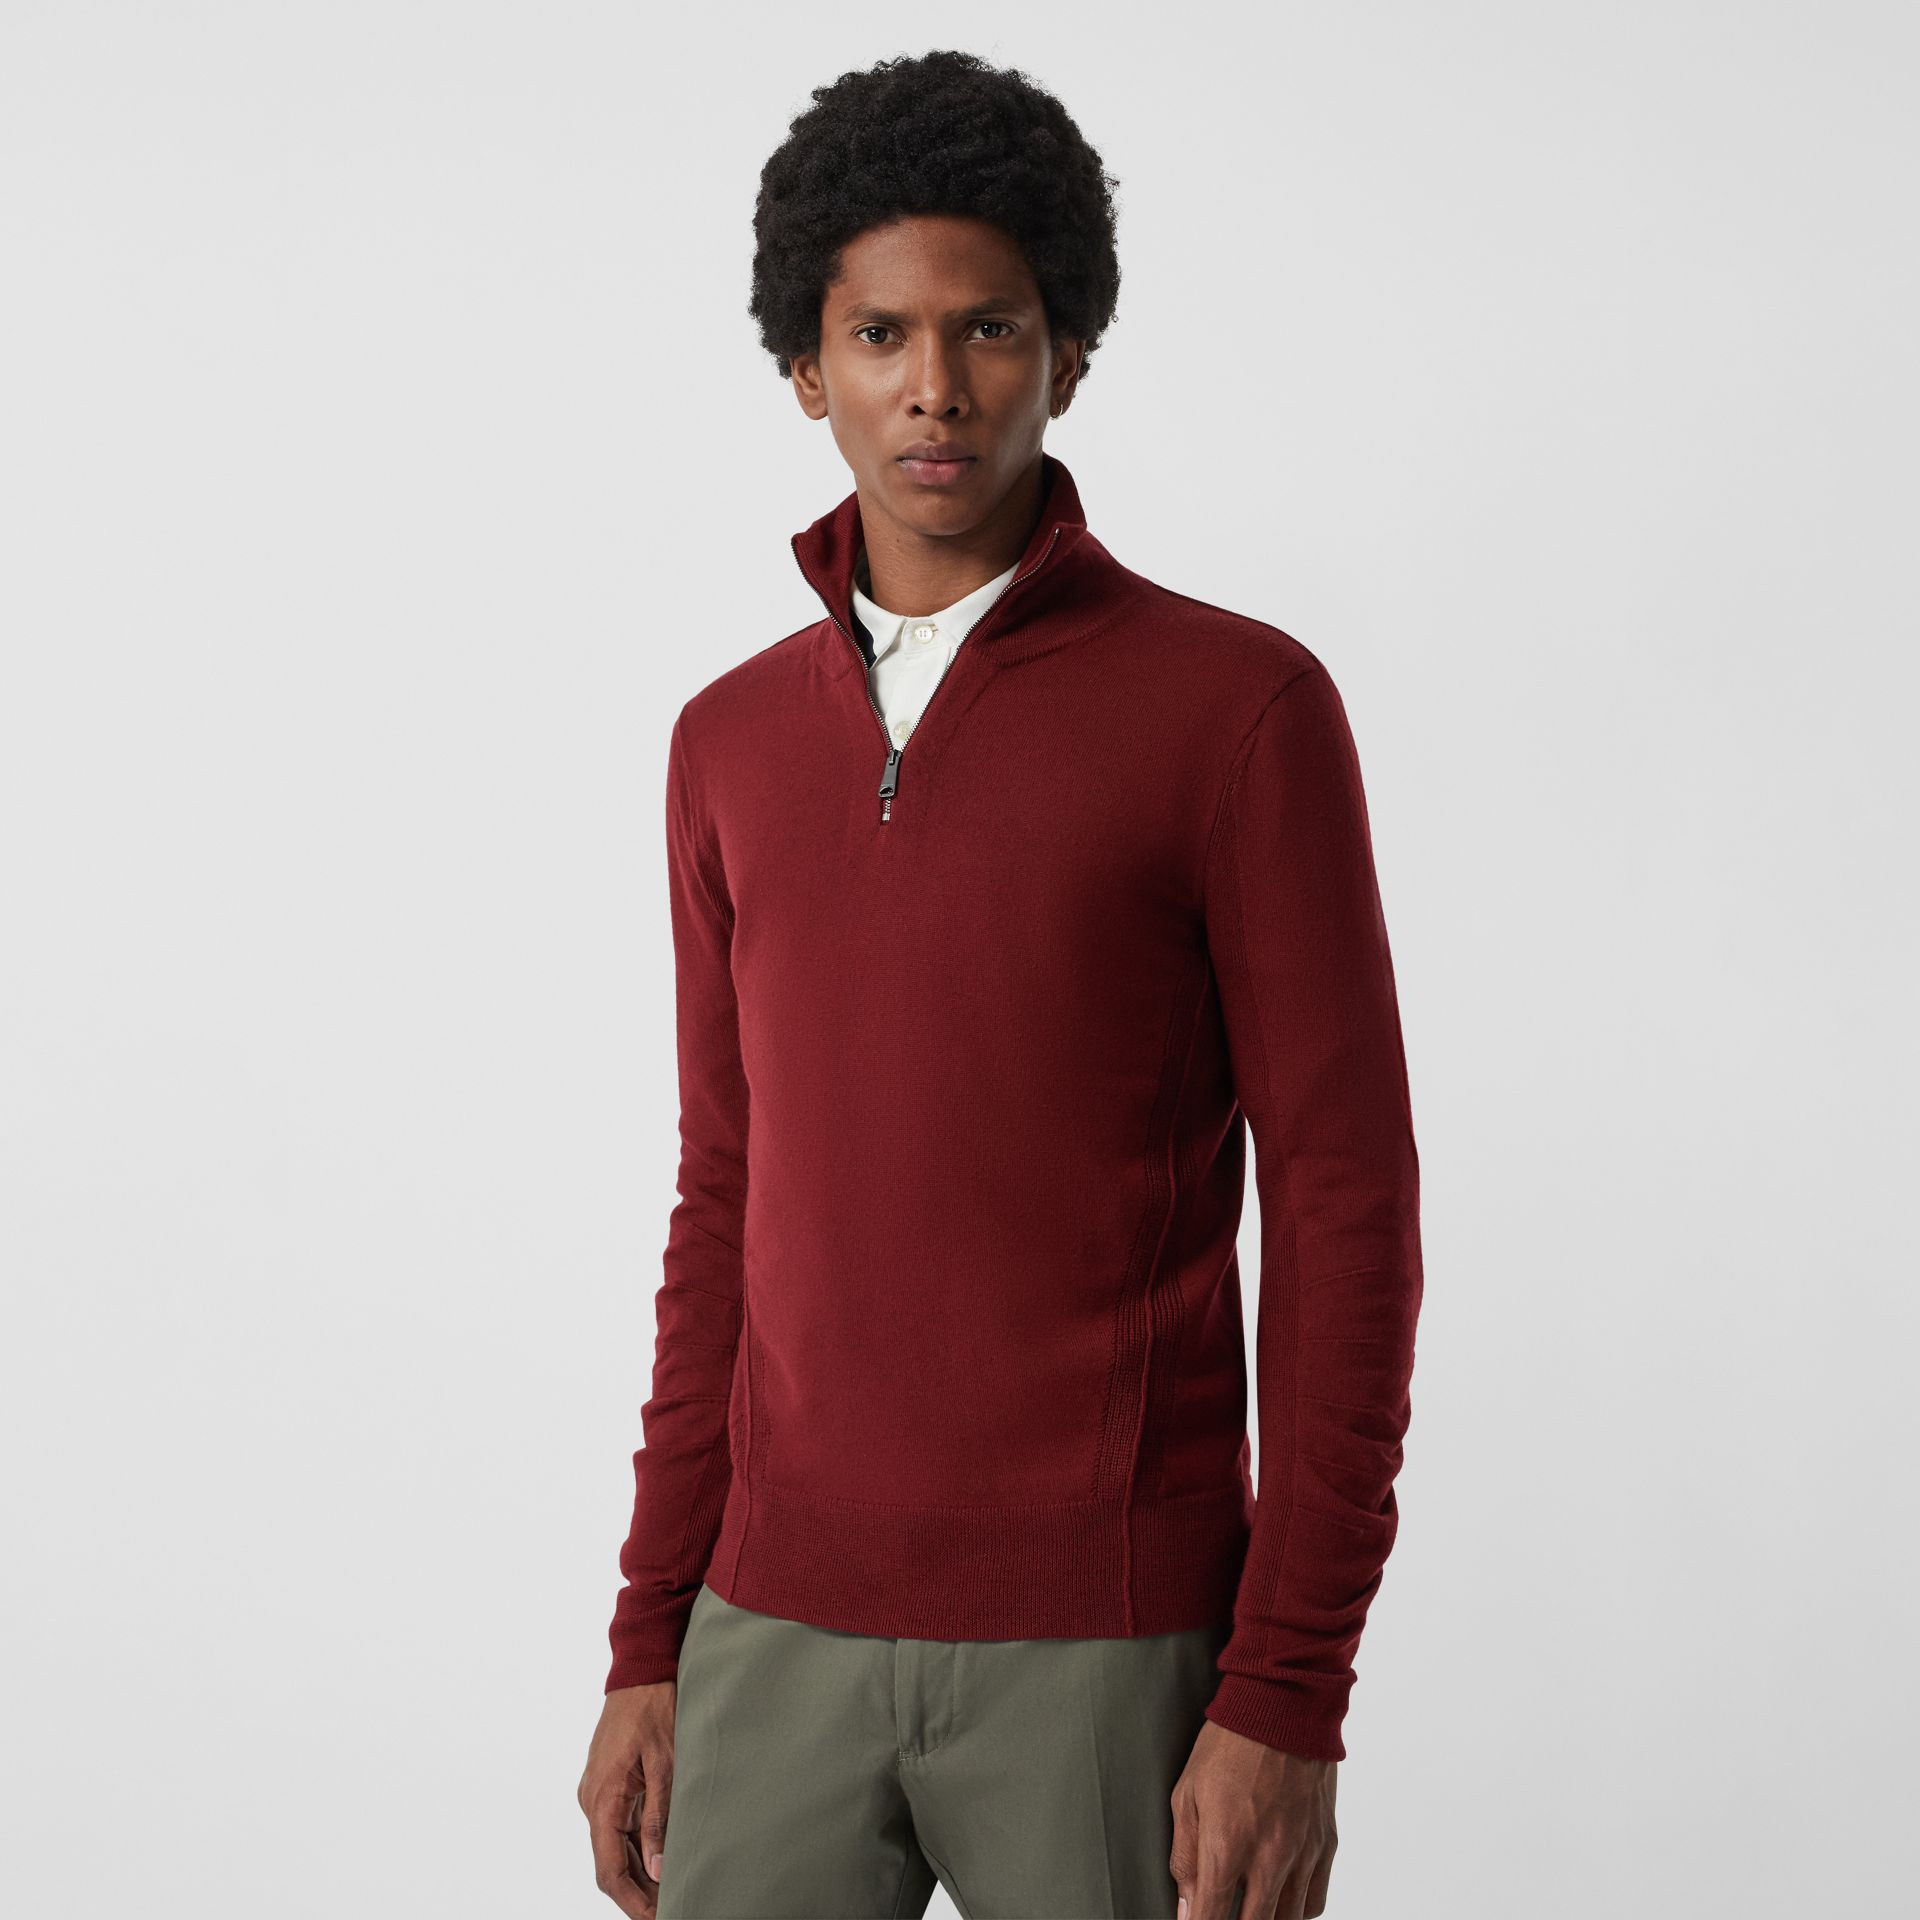 Merino Wool Half-zip Sweater in Burgundy - Men | Burberry Australia - gallery image 4